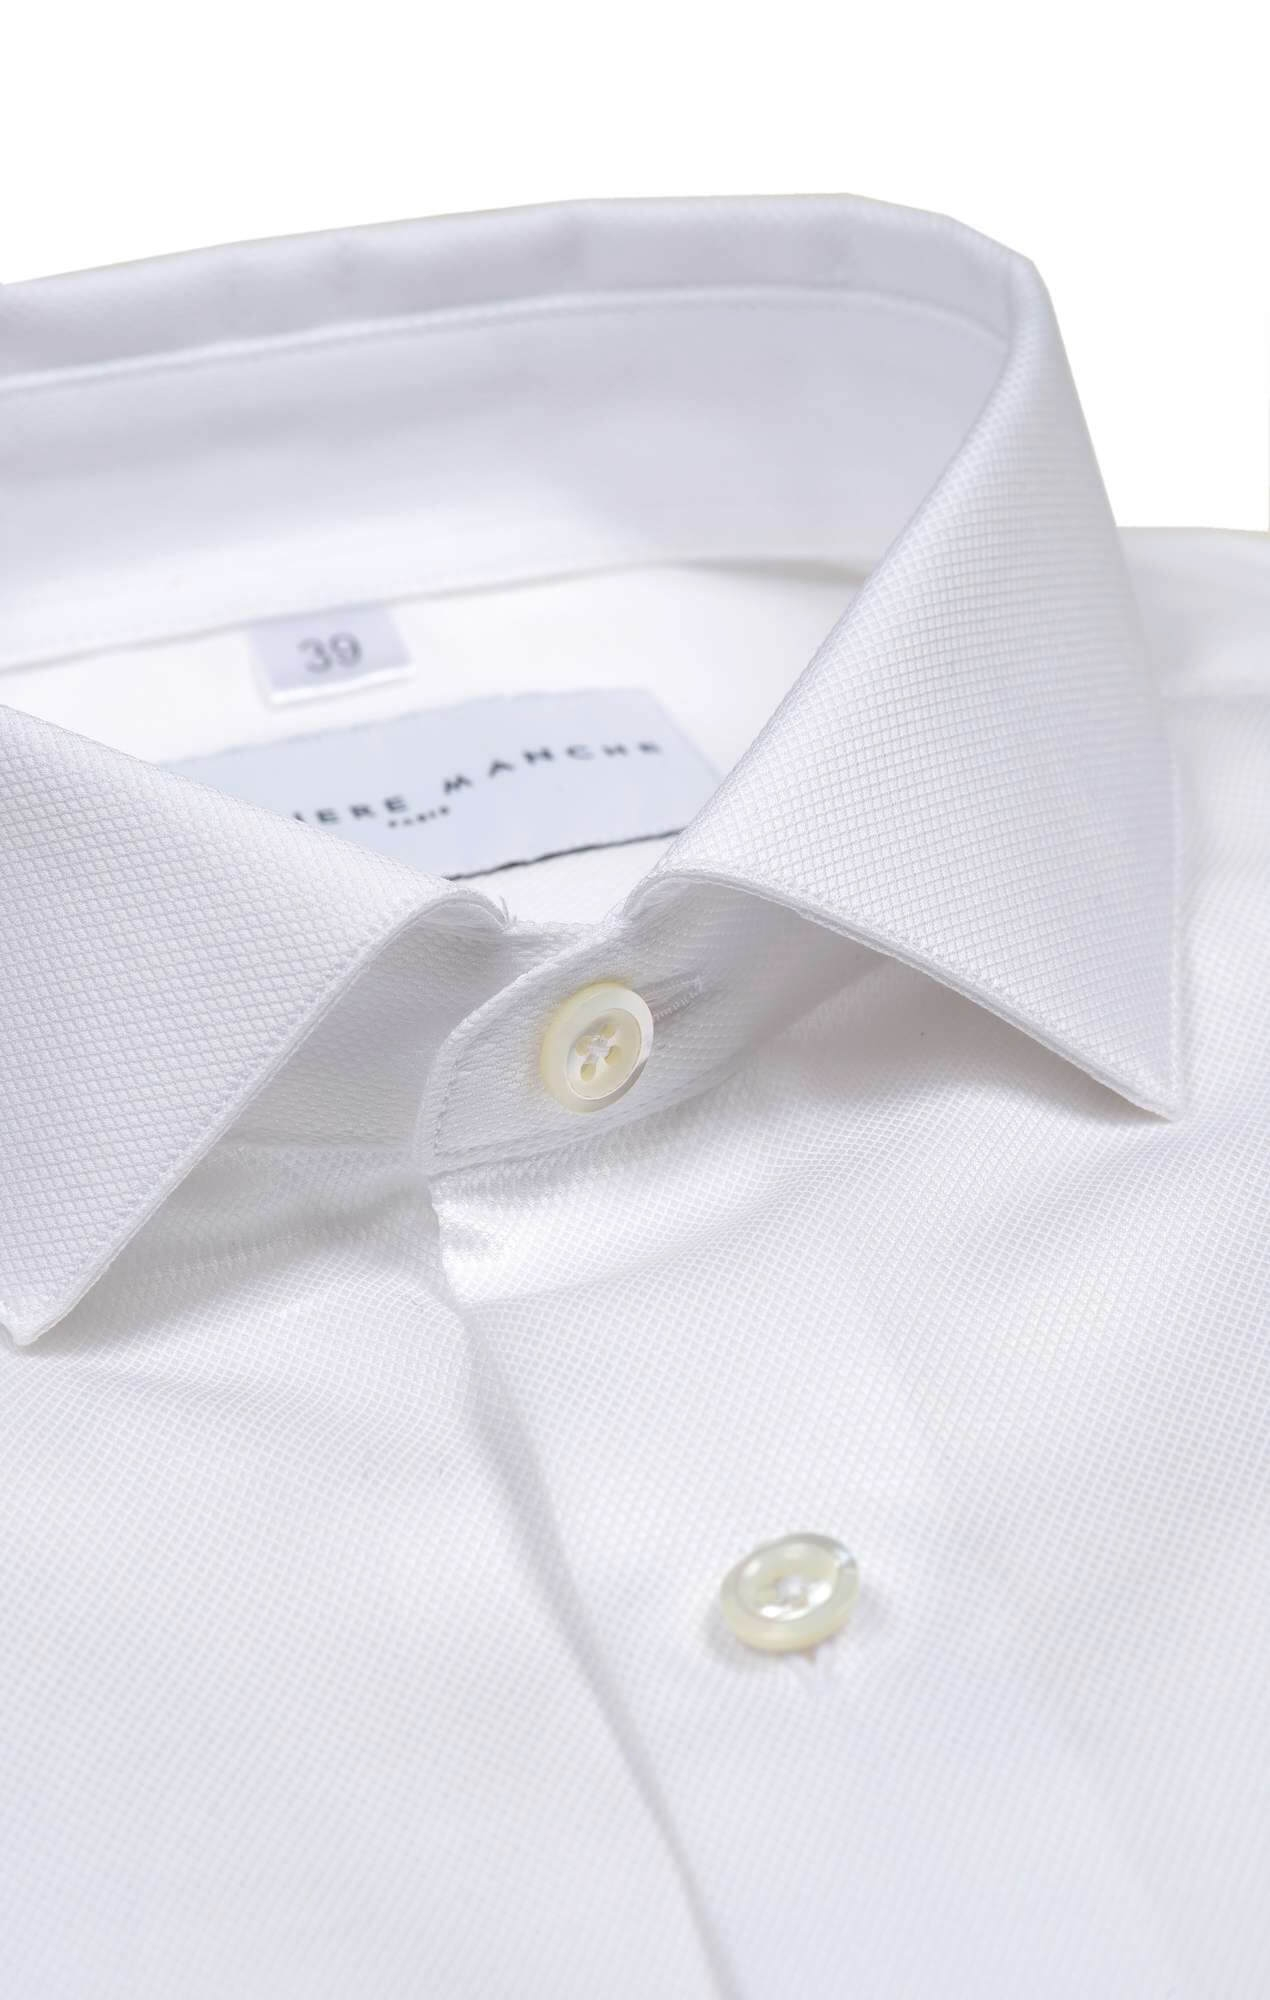 White dobby shirt with french cuff